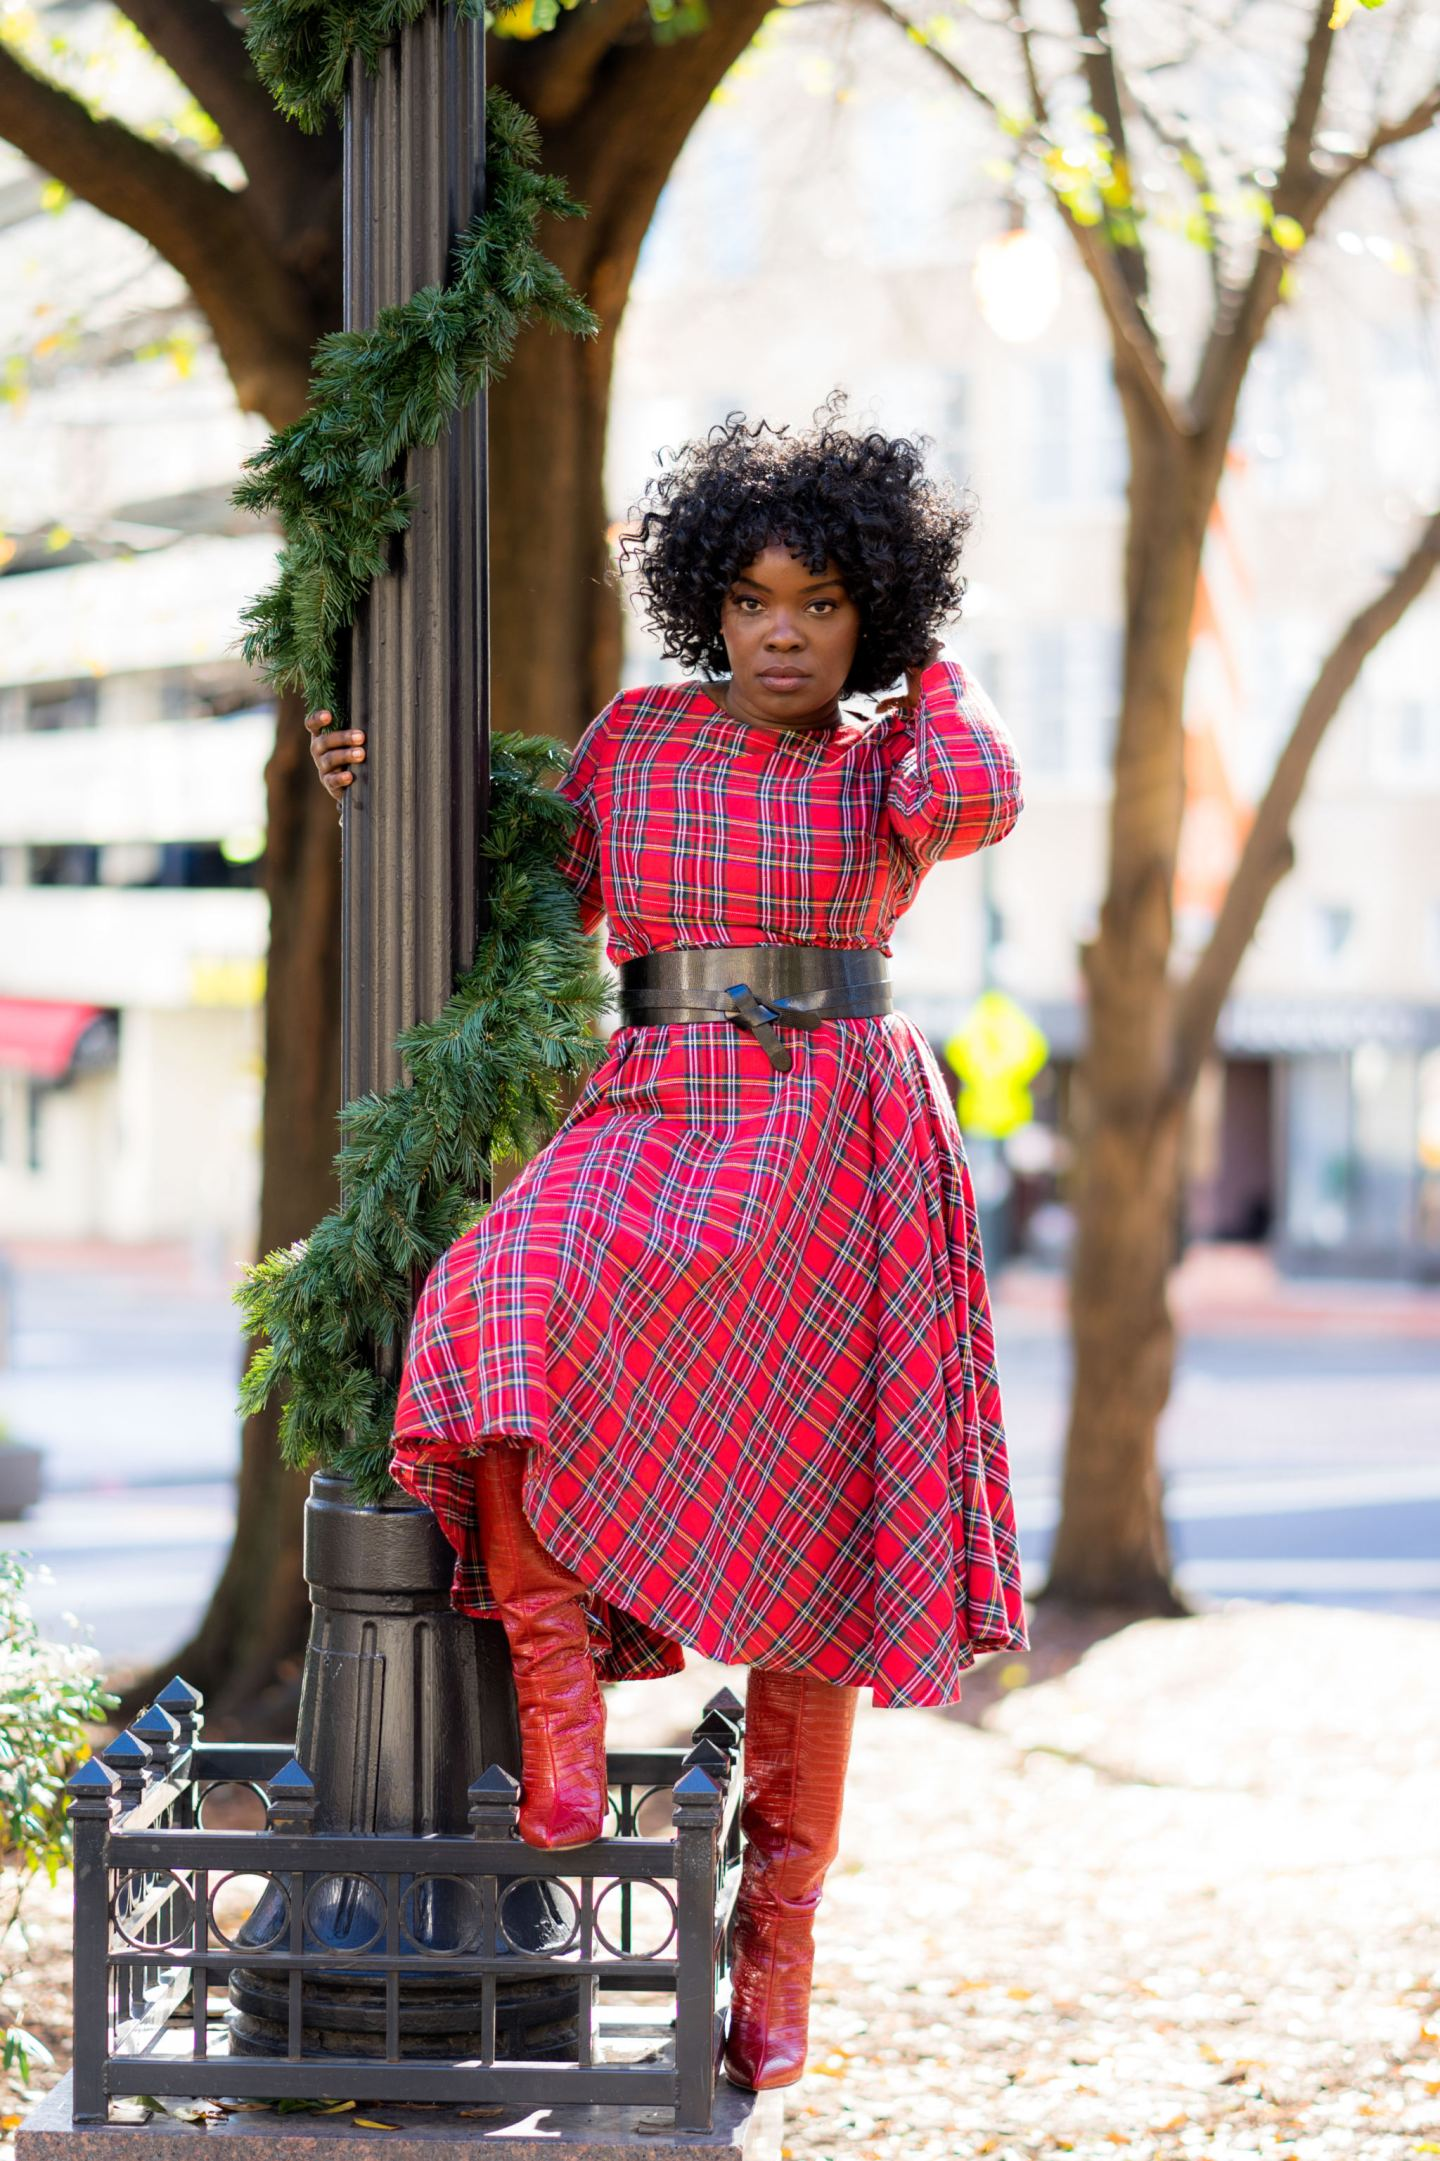 Black woman wearing red thrift store dress